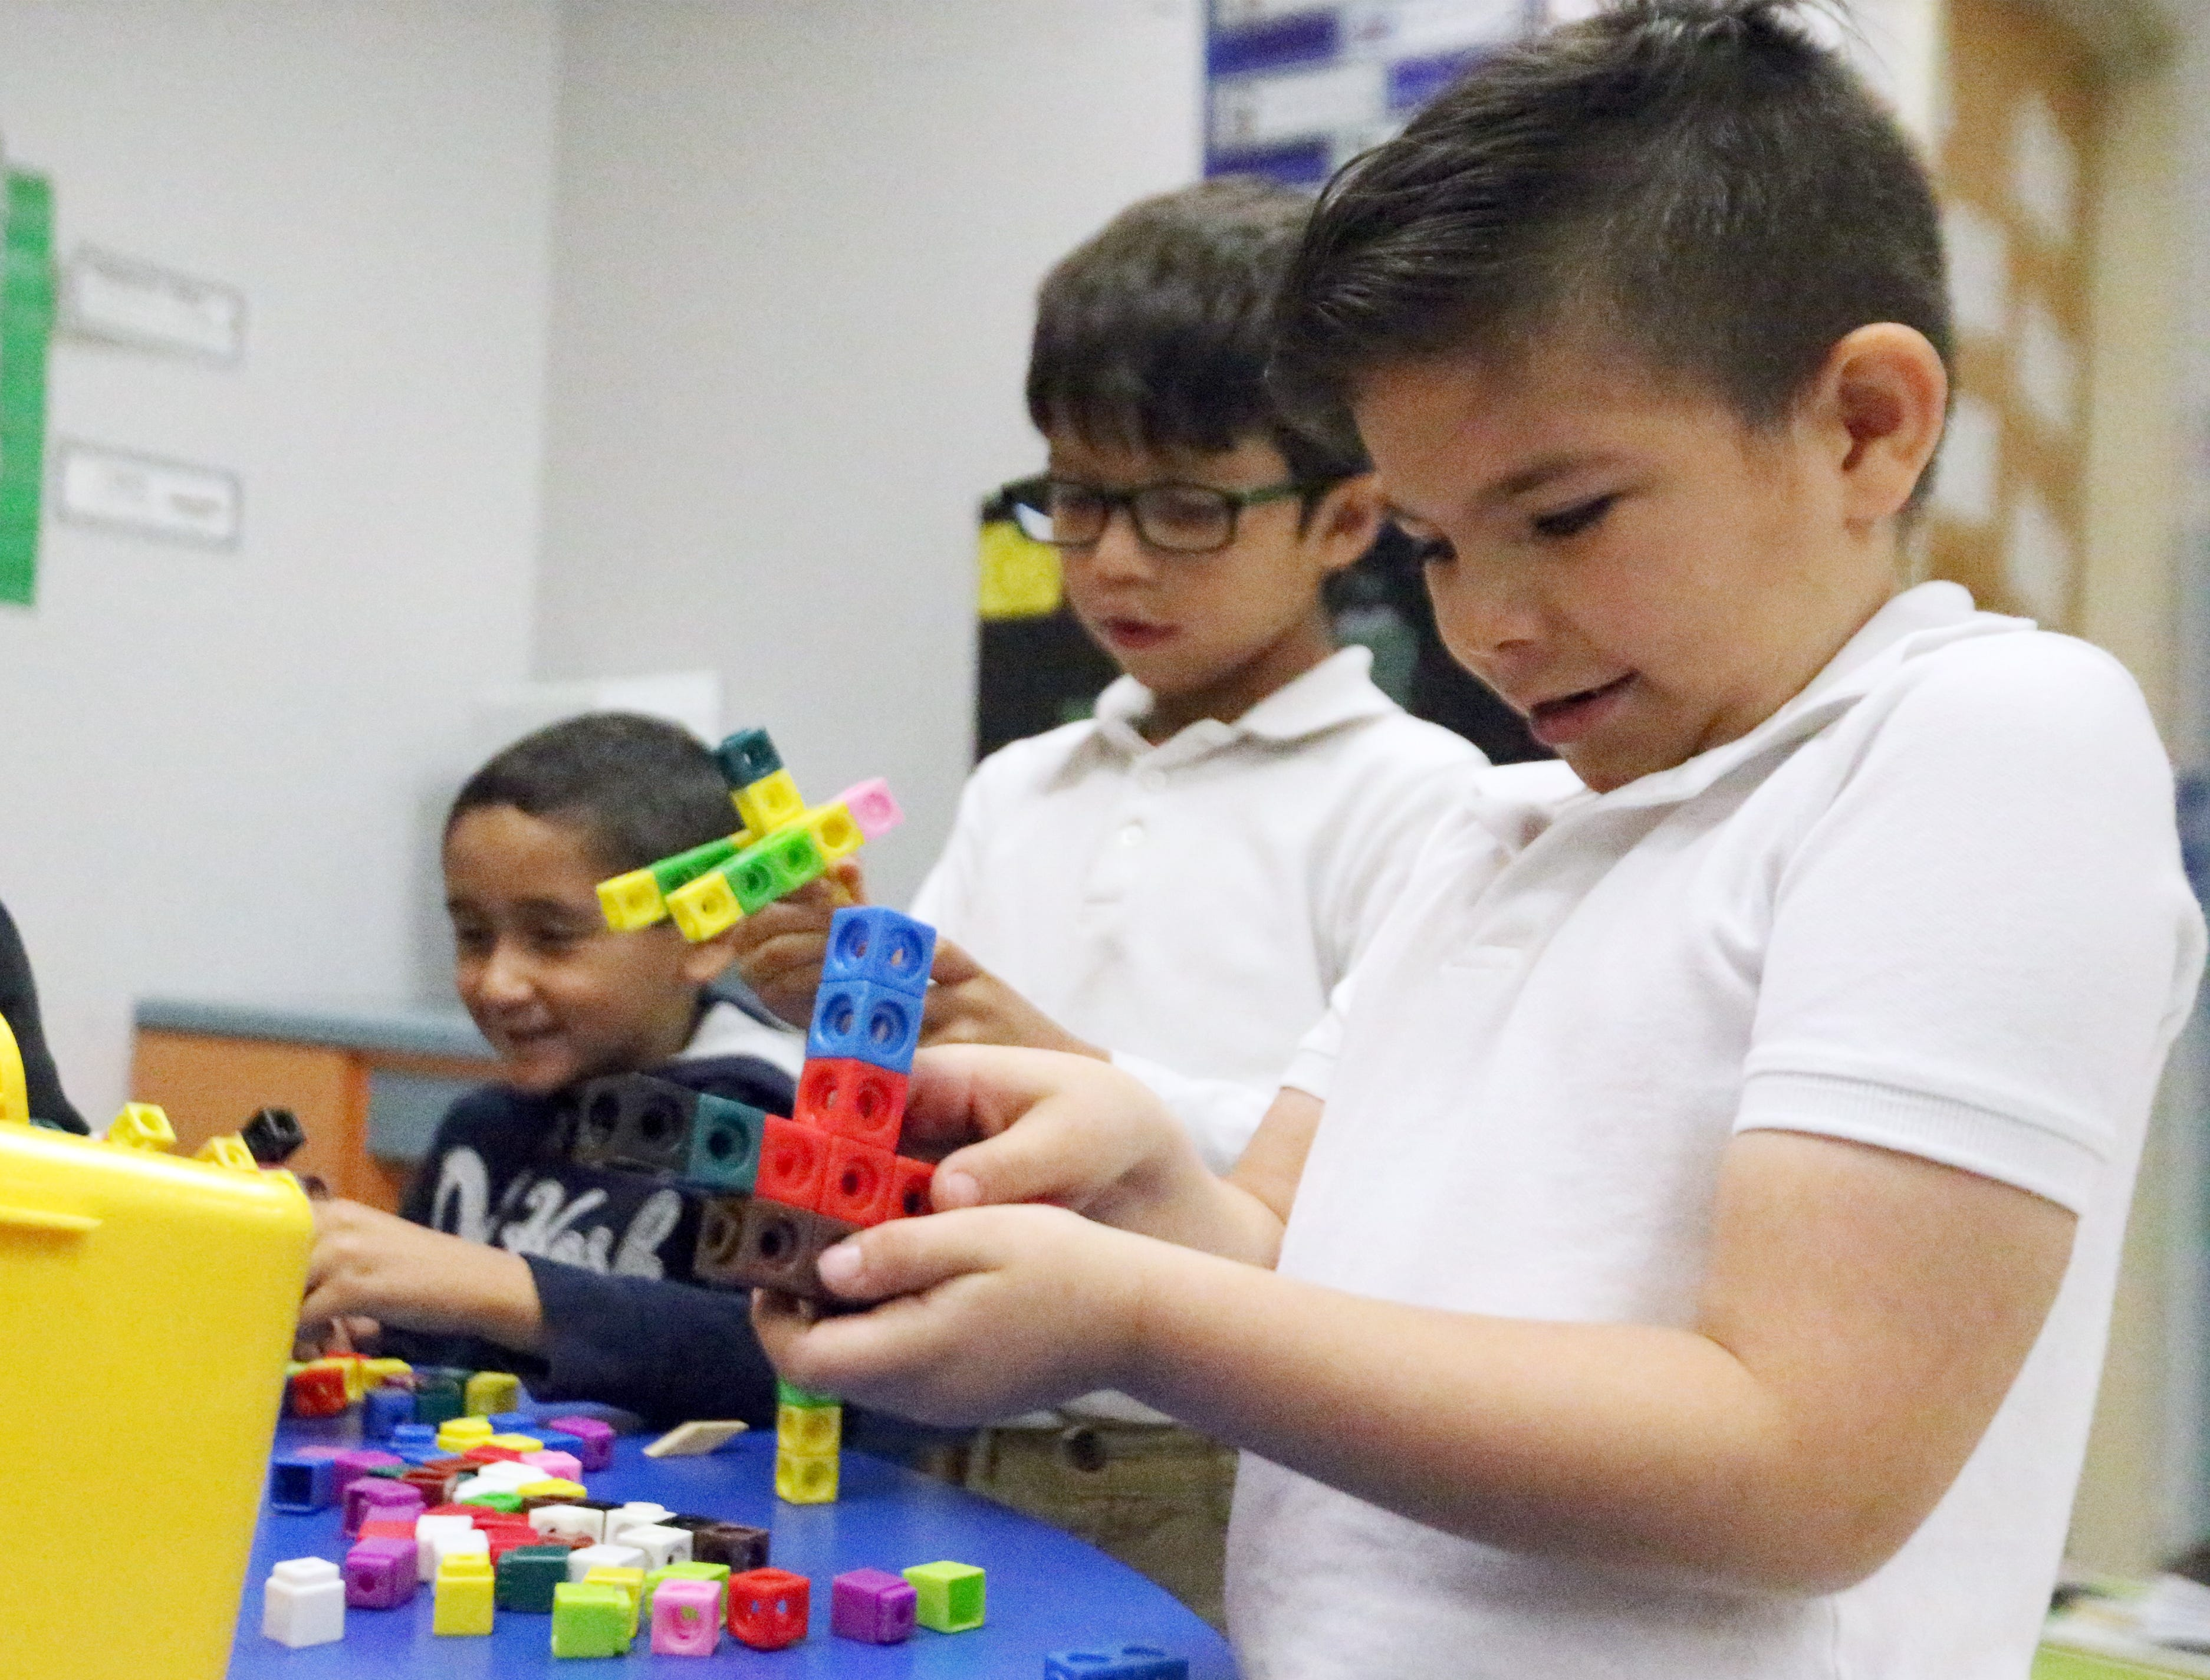 Christopher Robles, right, works with classmates in building 'robot zombies' from building cubes during an activity time in Zelene Blancas' first grade bilingual class at Dr. Sue Shook Elementary School in far East El Paso.